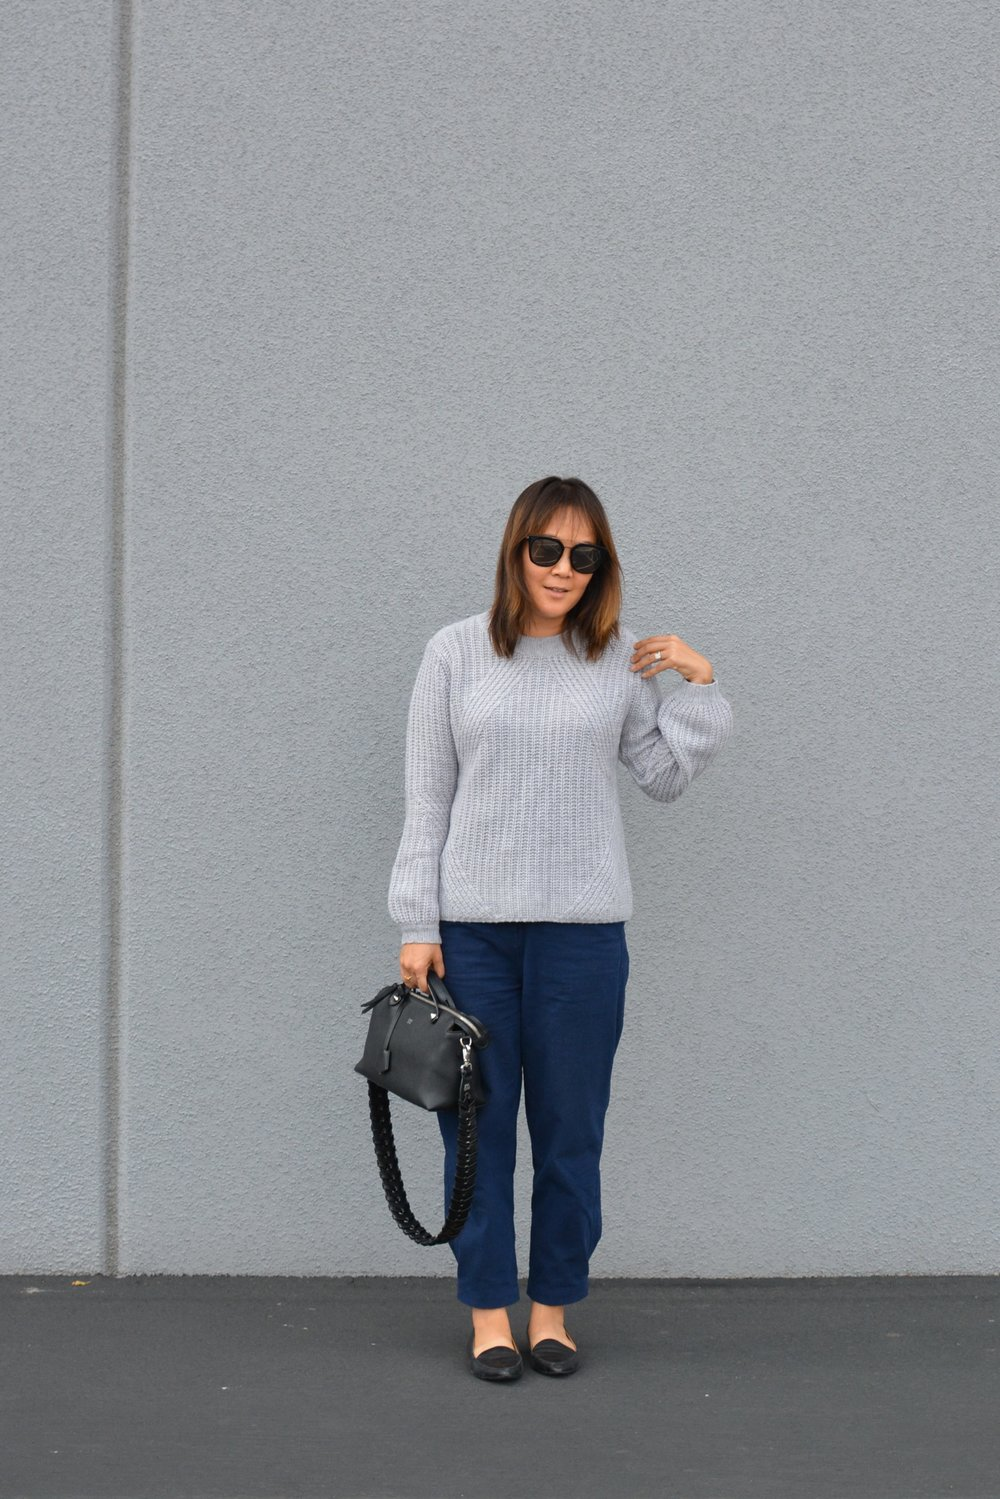 Grana Review Cashmere Textured Sweater (3 of 3)-min.jpg